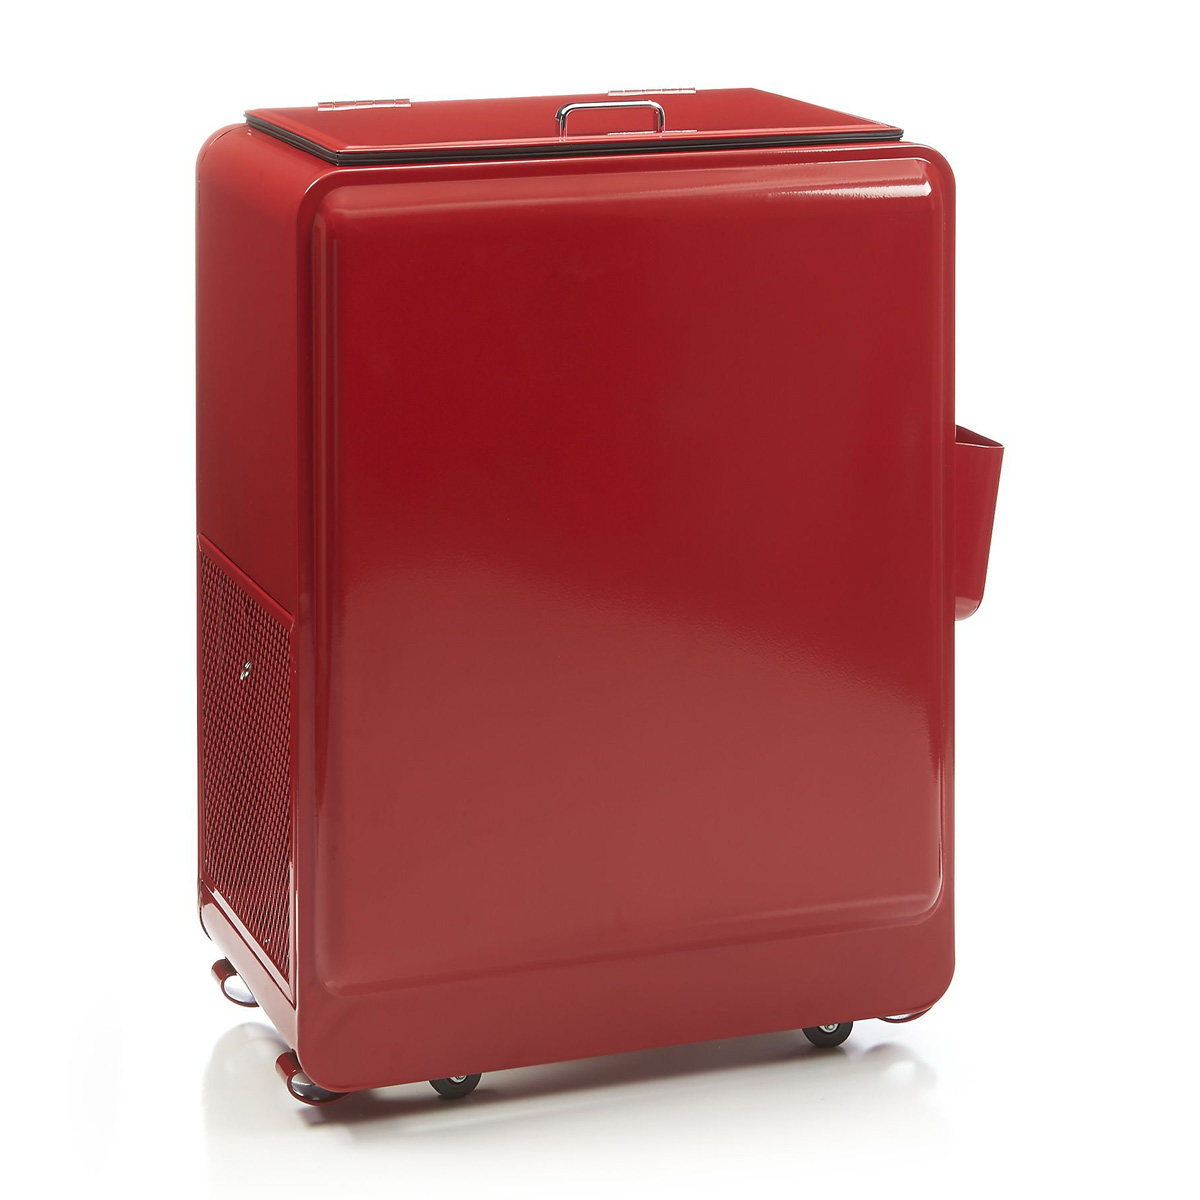 Retro Red Rolling Drink Cooler The Green Head